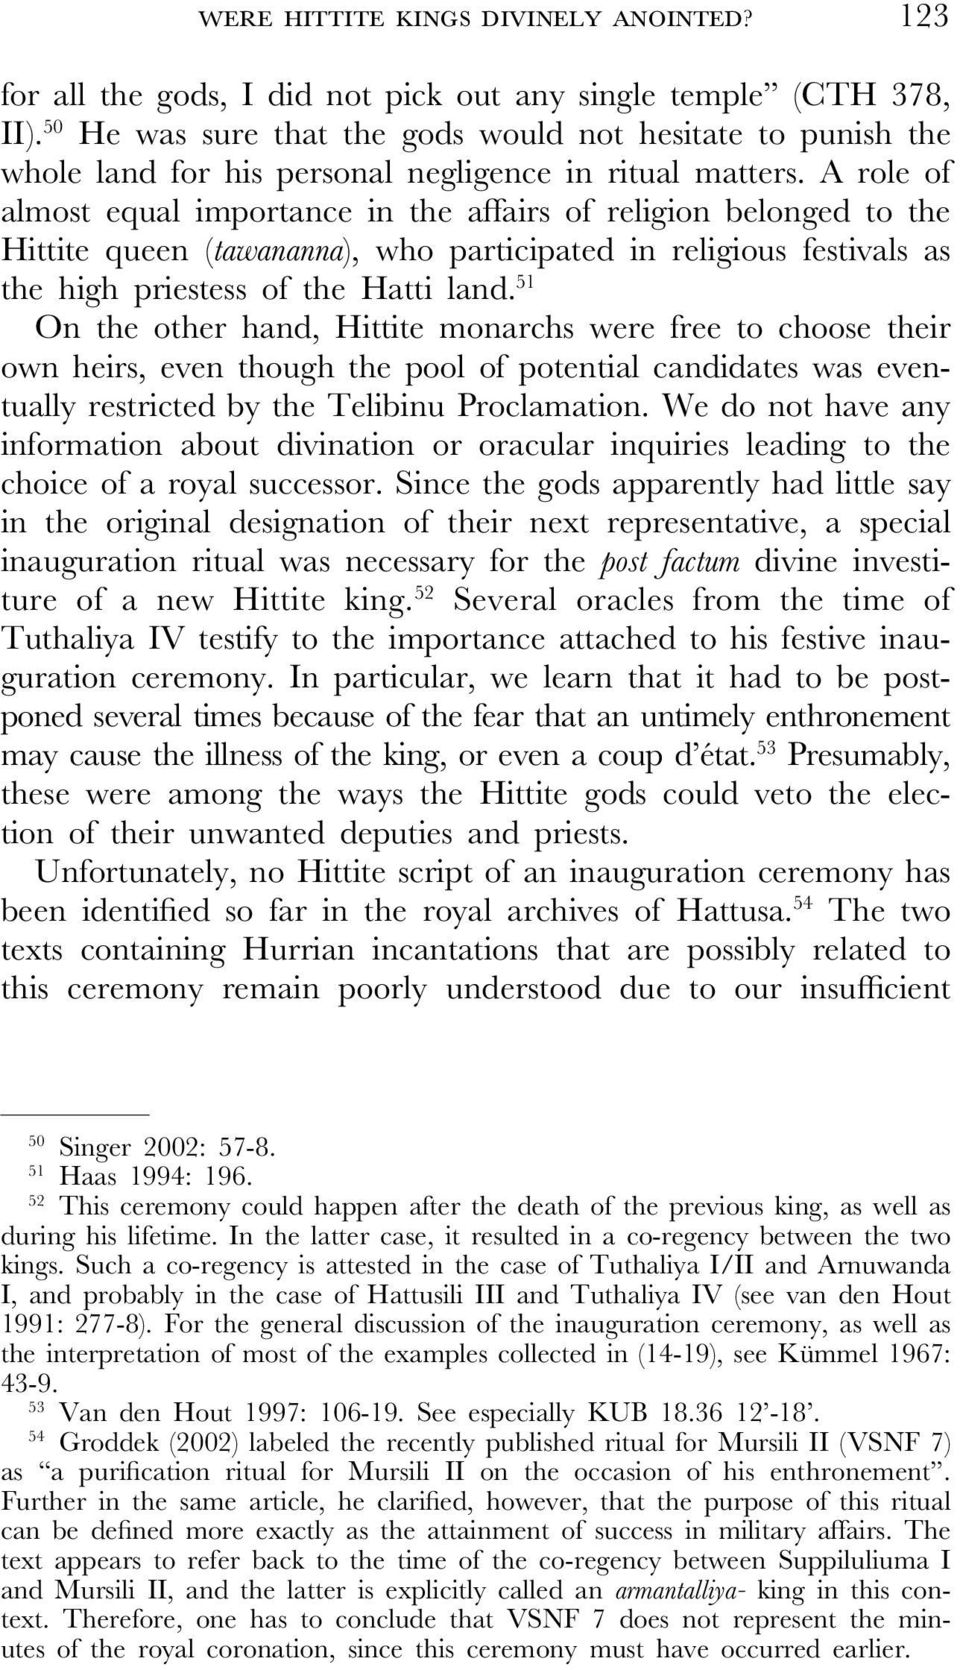 A role of almost equal importance in the affairs of religion belonged to the Hittite queen (tawananna), who participated in religious festivals as the high priestess of the Hatti land.